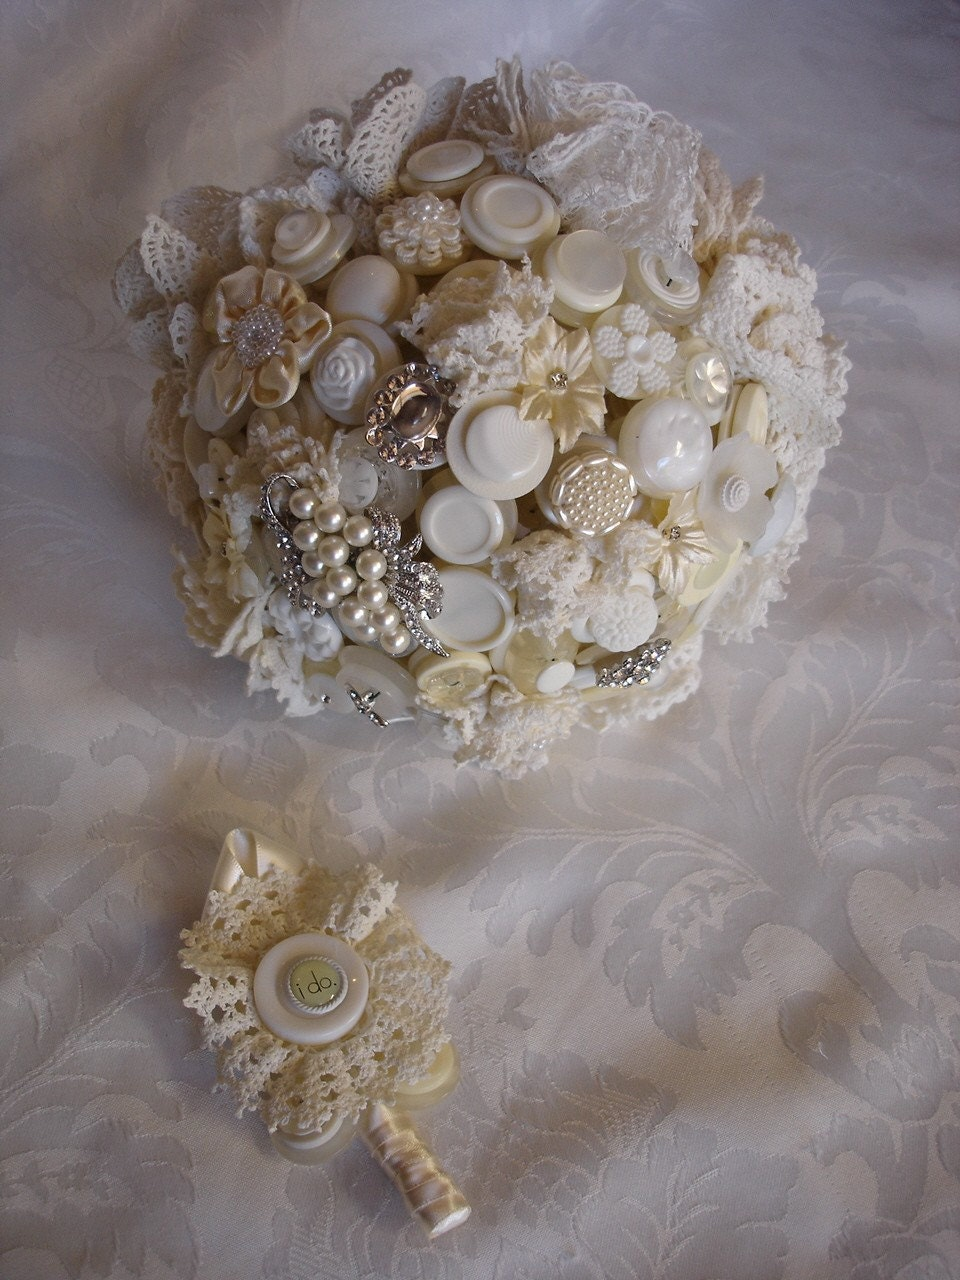 The Tea and Lace Wedding Button Bouquet and Boutonniere